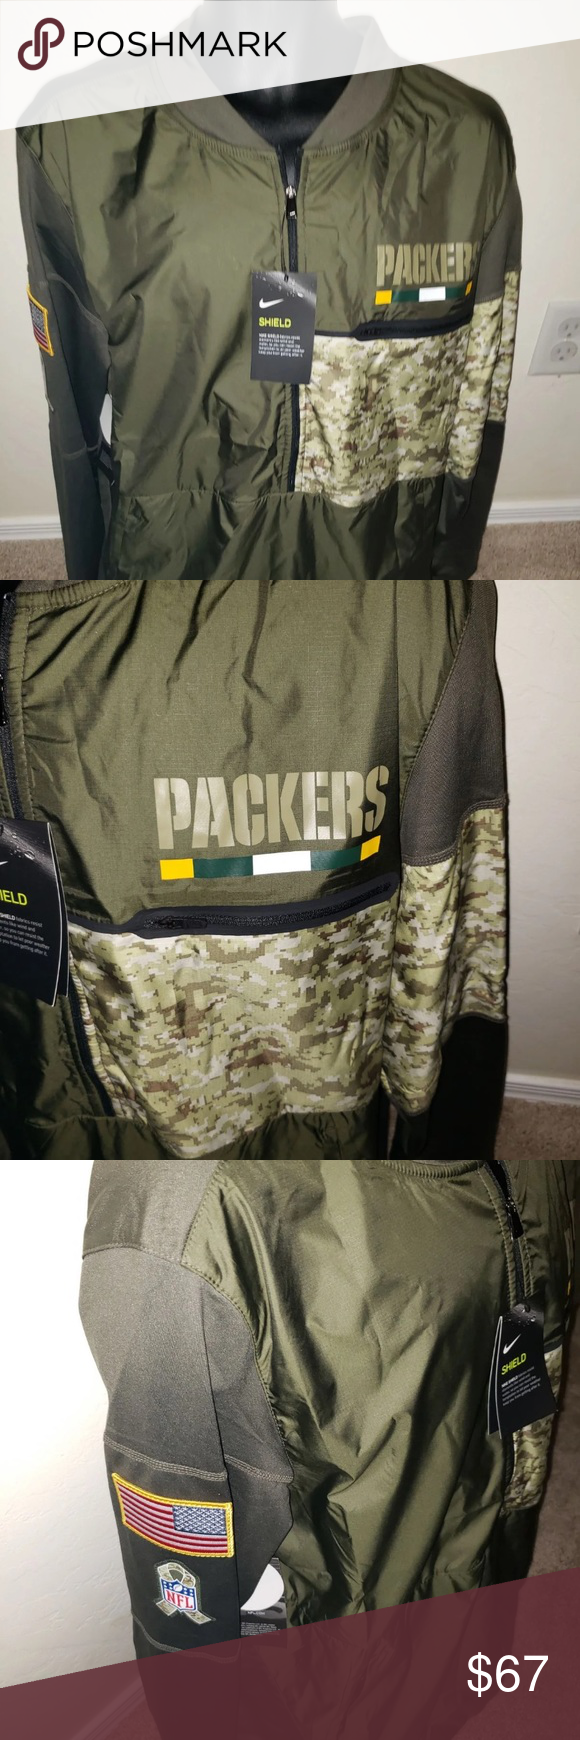 Nike Men's Salute to Service Packers L New Green Bay Packers Large Salute to service jacket zip up Nike Jackets & Coats #salutetoservice Nike Men's Salute to Service Packers L New Green Bay Packers Large Salute to service jacket zip up Nike Jackets & Coats #salutetoservice